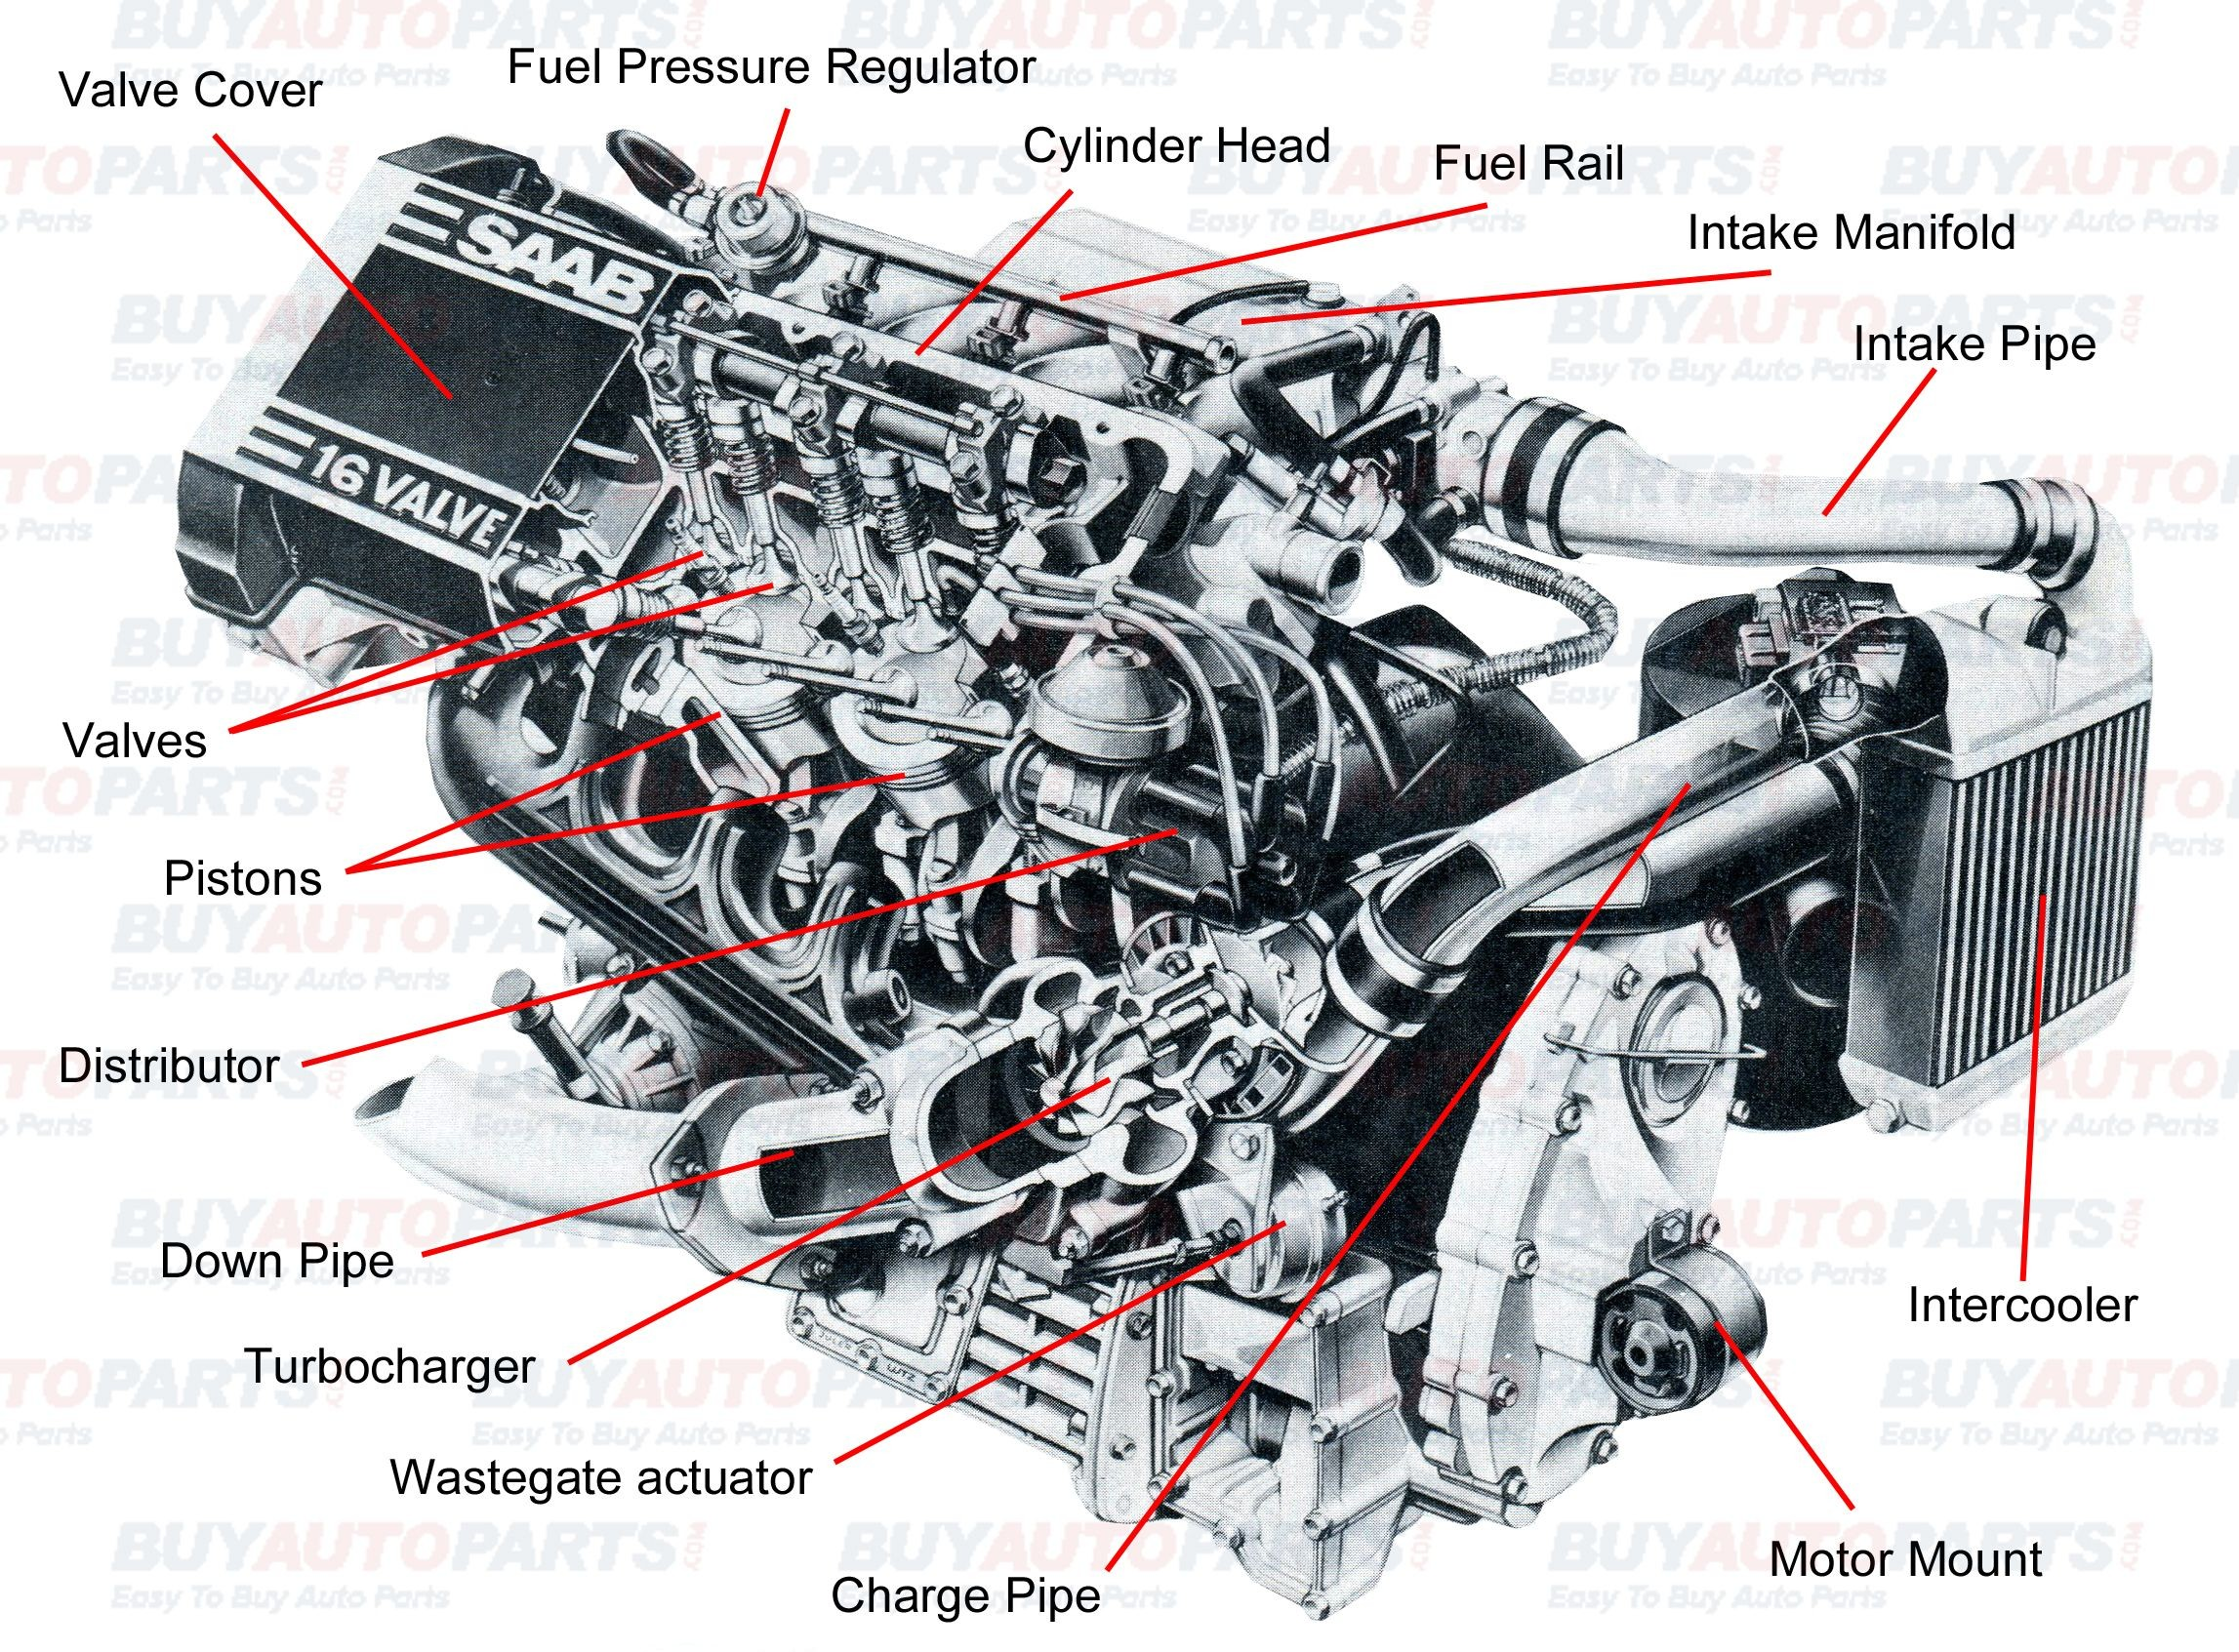 Inline 4 Engine Diagram All Internal Bustion Engines Have the Same Basic Ponents the Of Inline 4 Engine Diagram